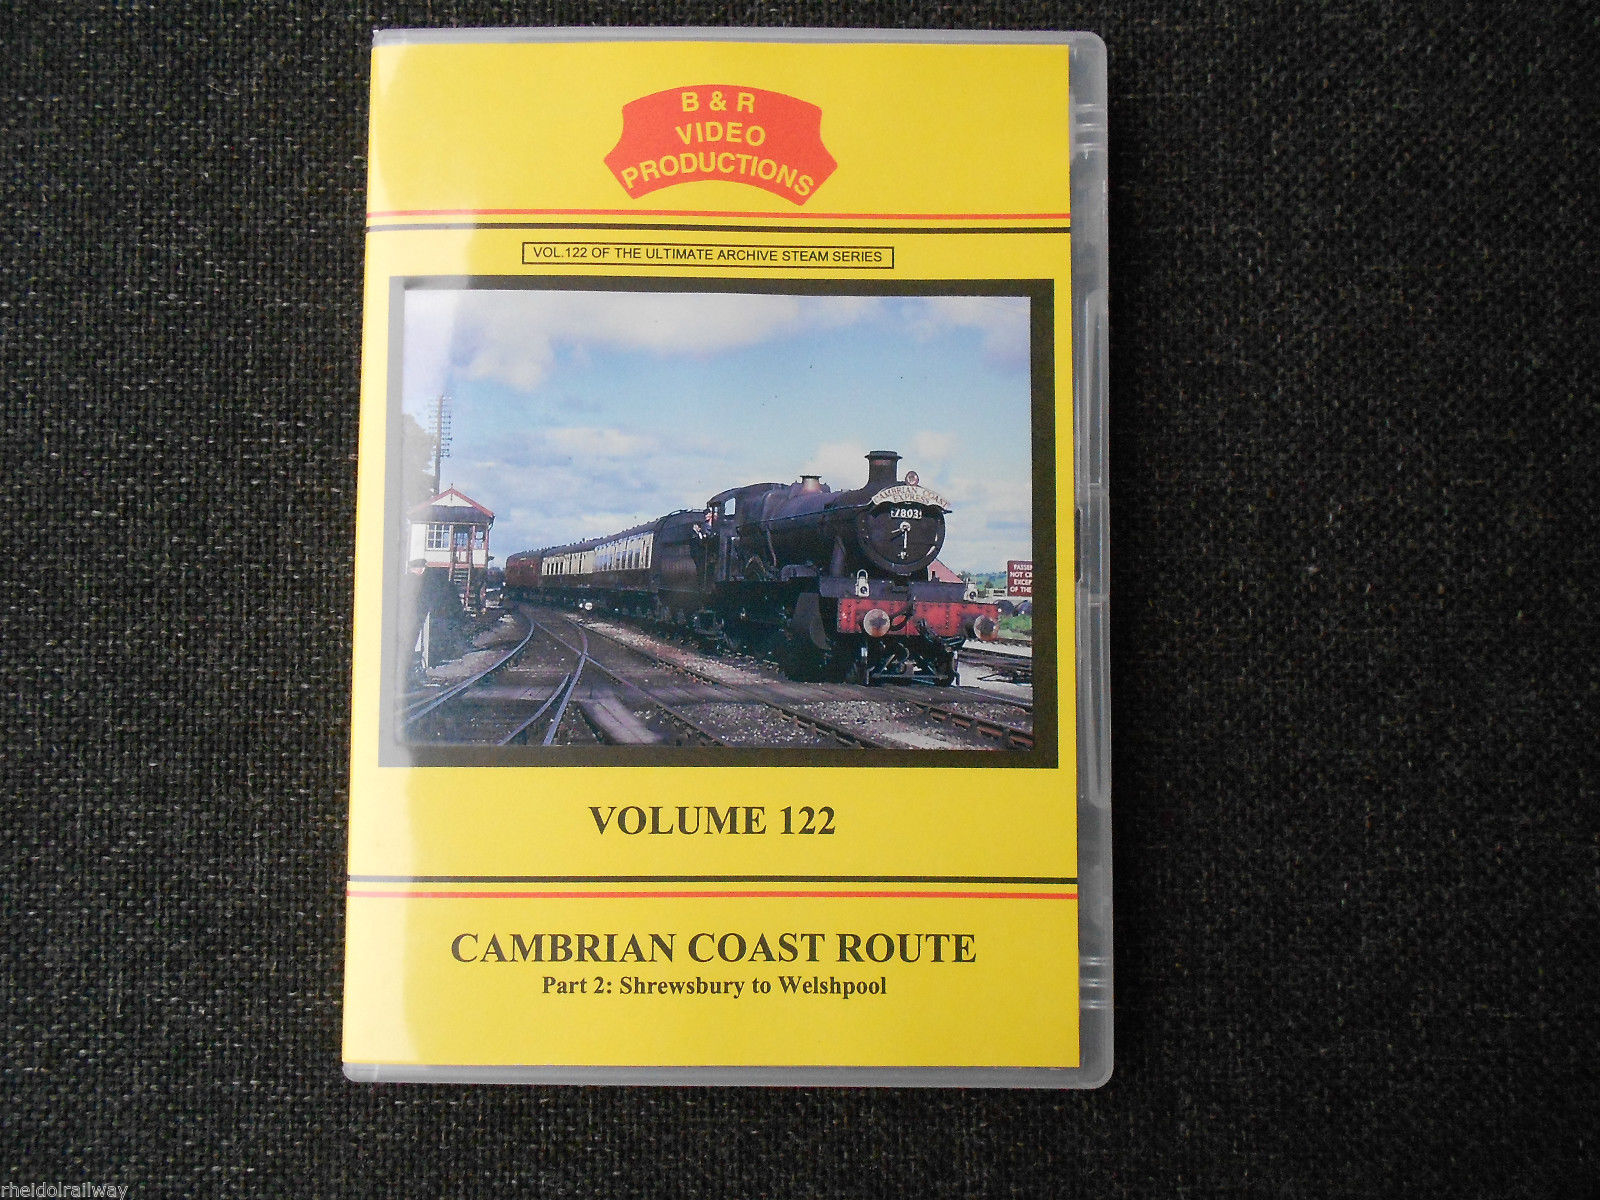 Shrewsbury, Welshpool, Bridgnorth, Cambrian Coast Route Part 2 B&R Vol 122 DVD